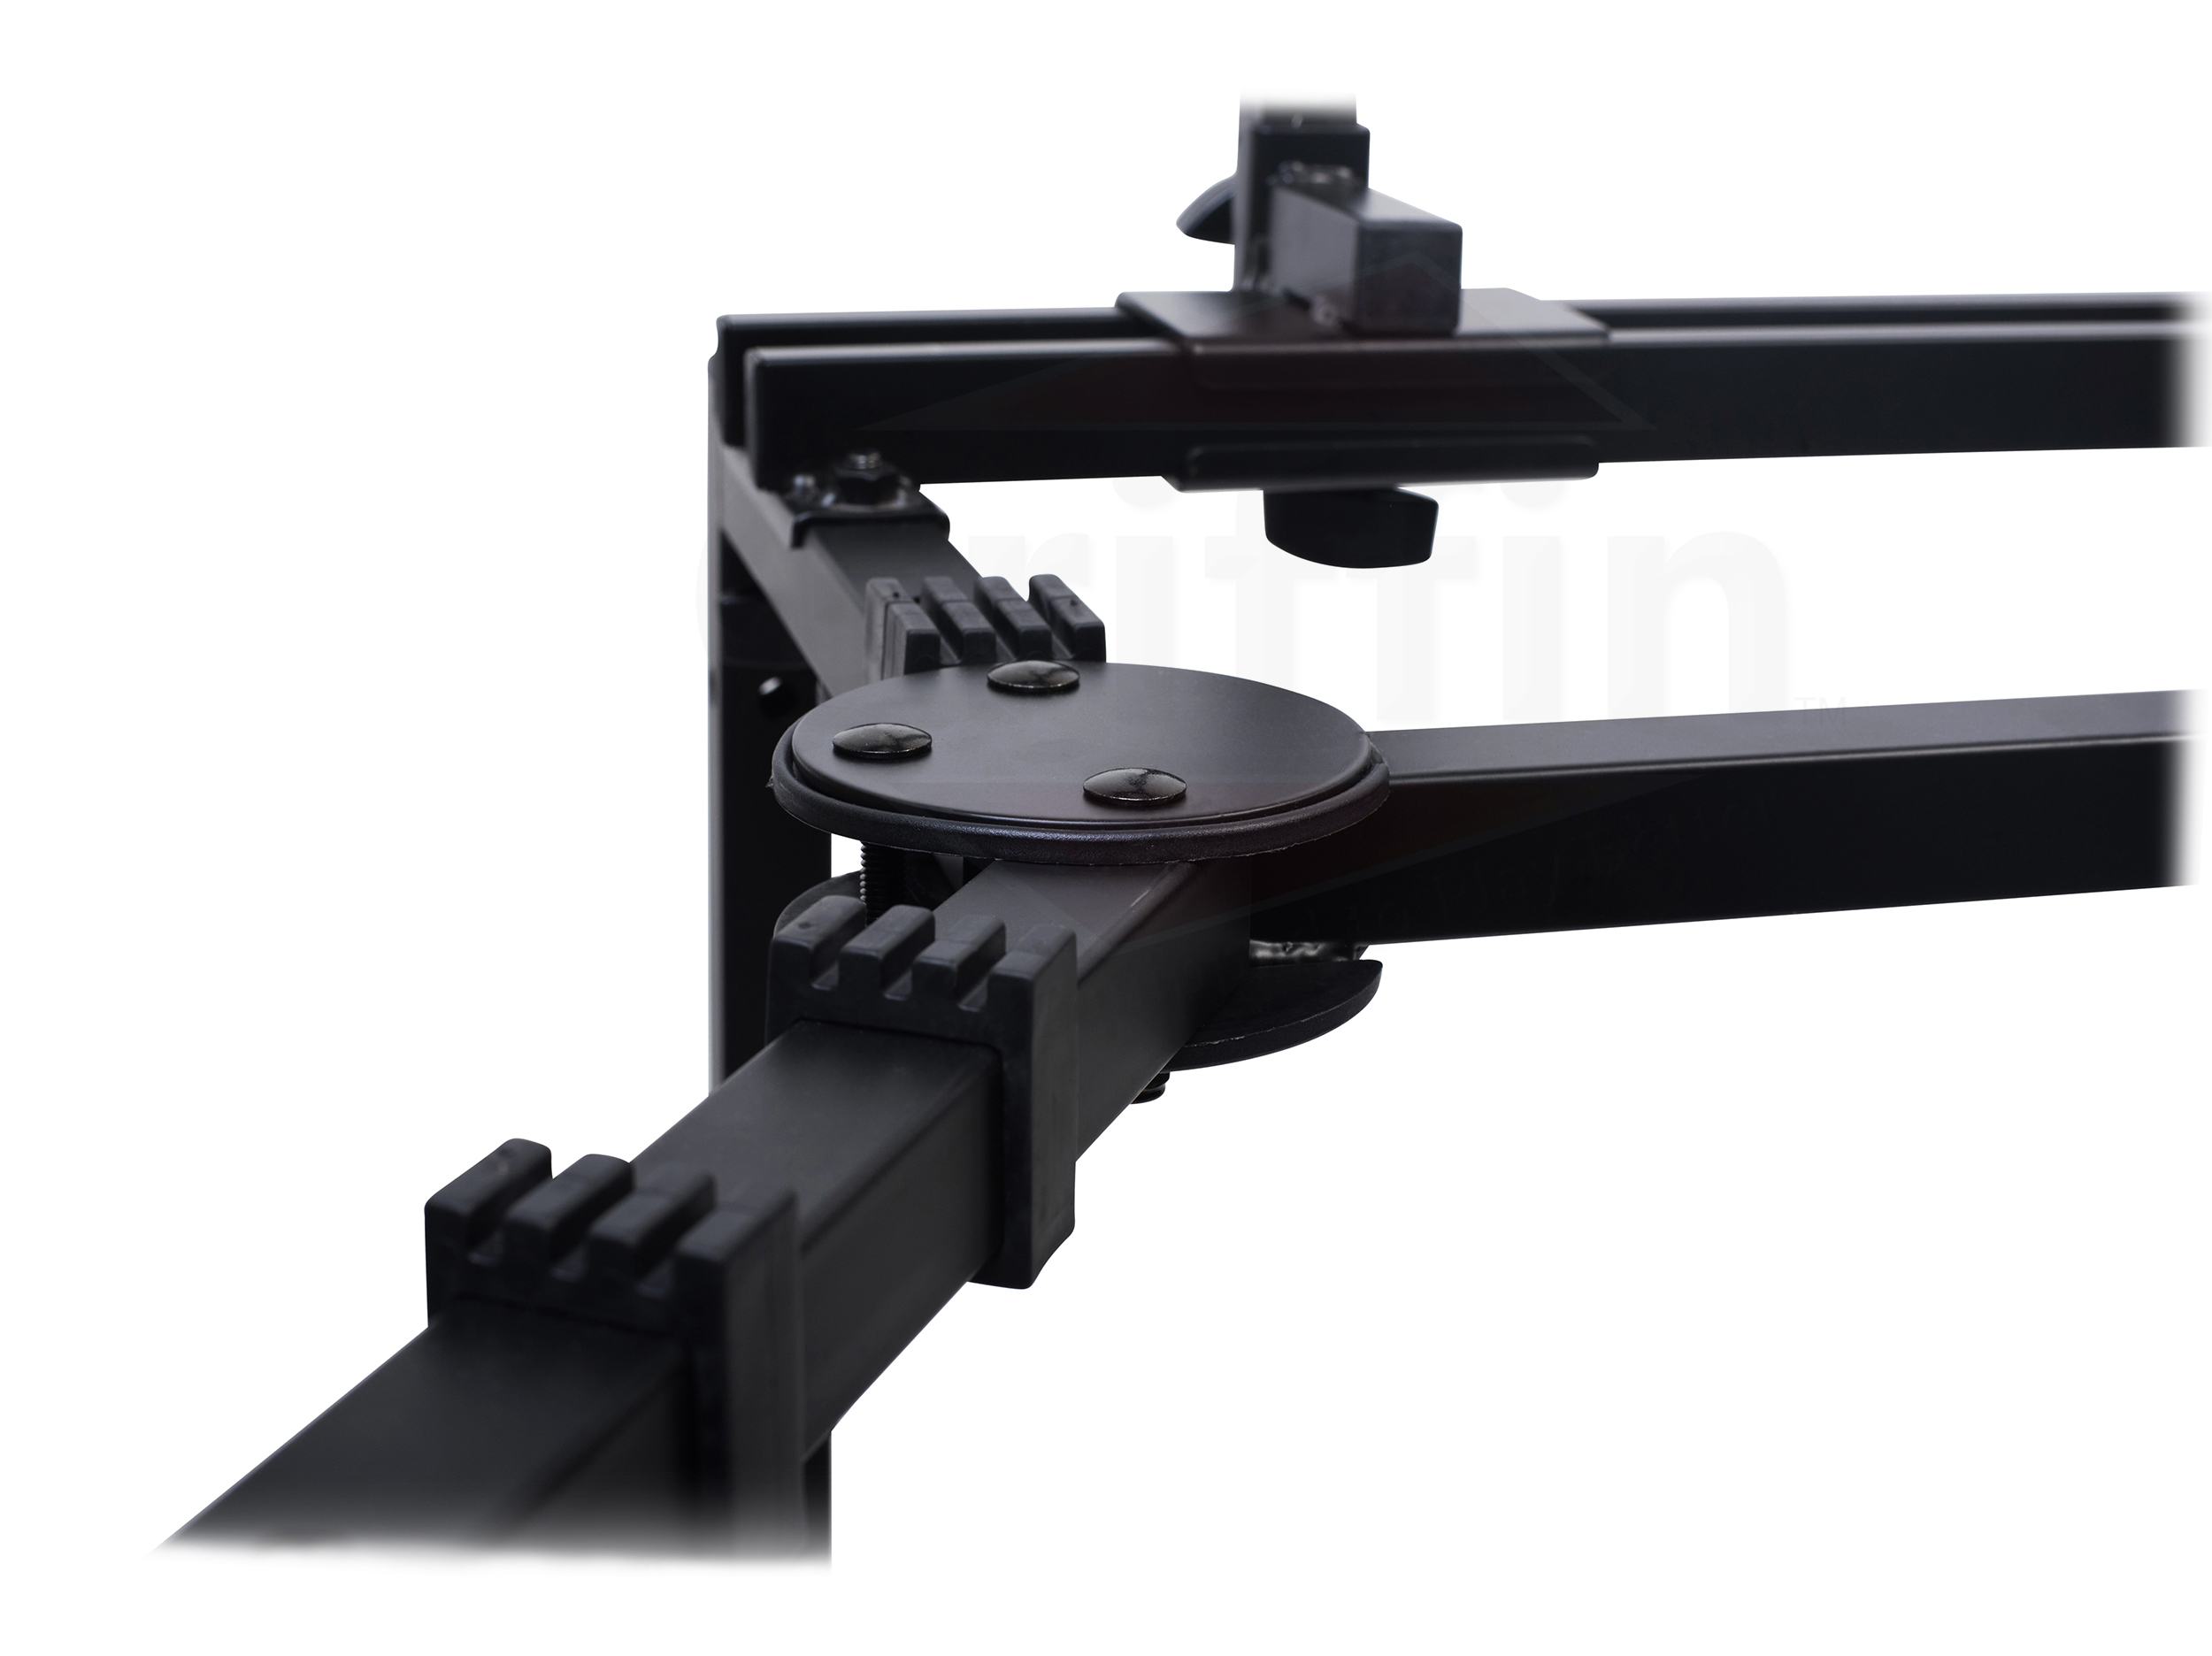 Invoice Pdf Pdf Double Keyboard Stand  Studio Stage Mixer Turntable Dj Coffin   Free Invoice App For Android Word with Best Iphone App For Receipts Excel Doublekeyboardstandstudiostagemixerturntabledj Samples Of Receipts Form Word